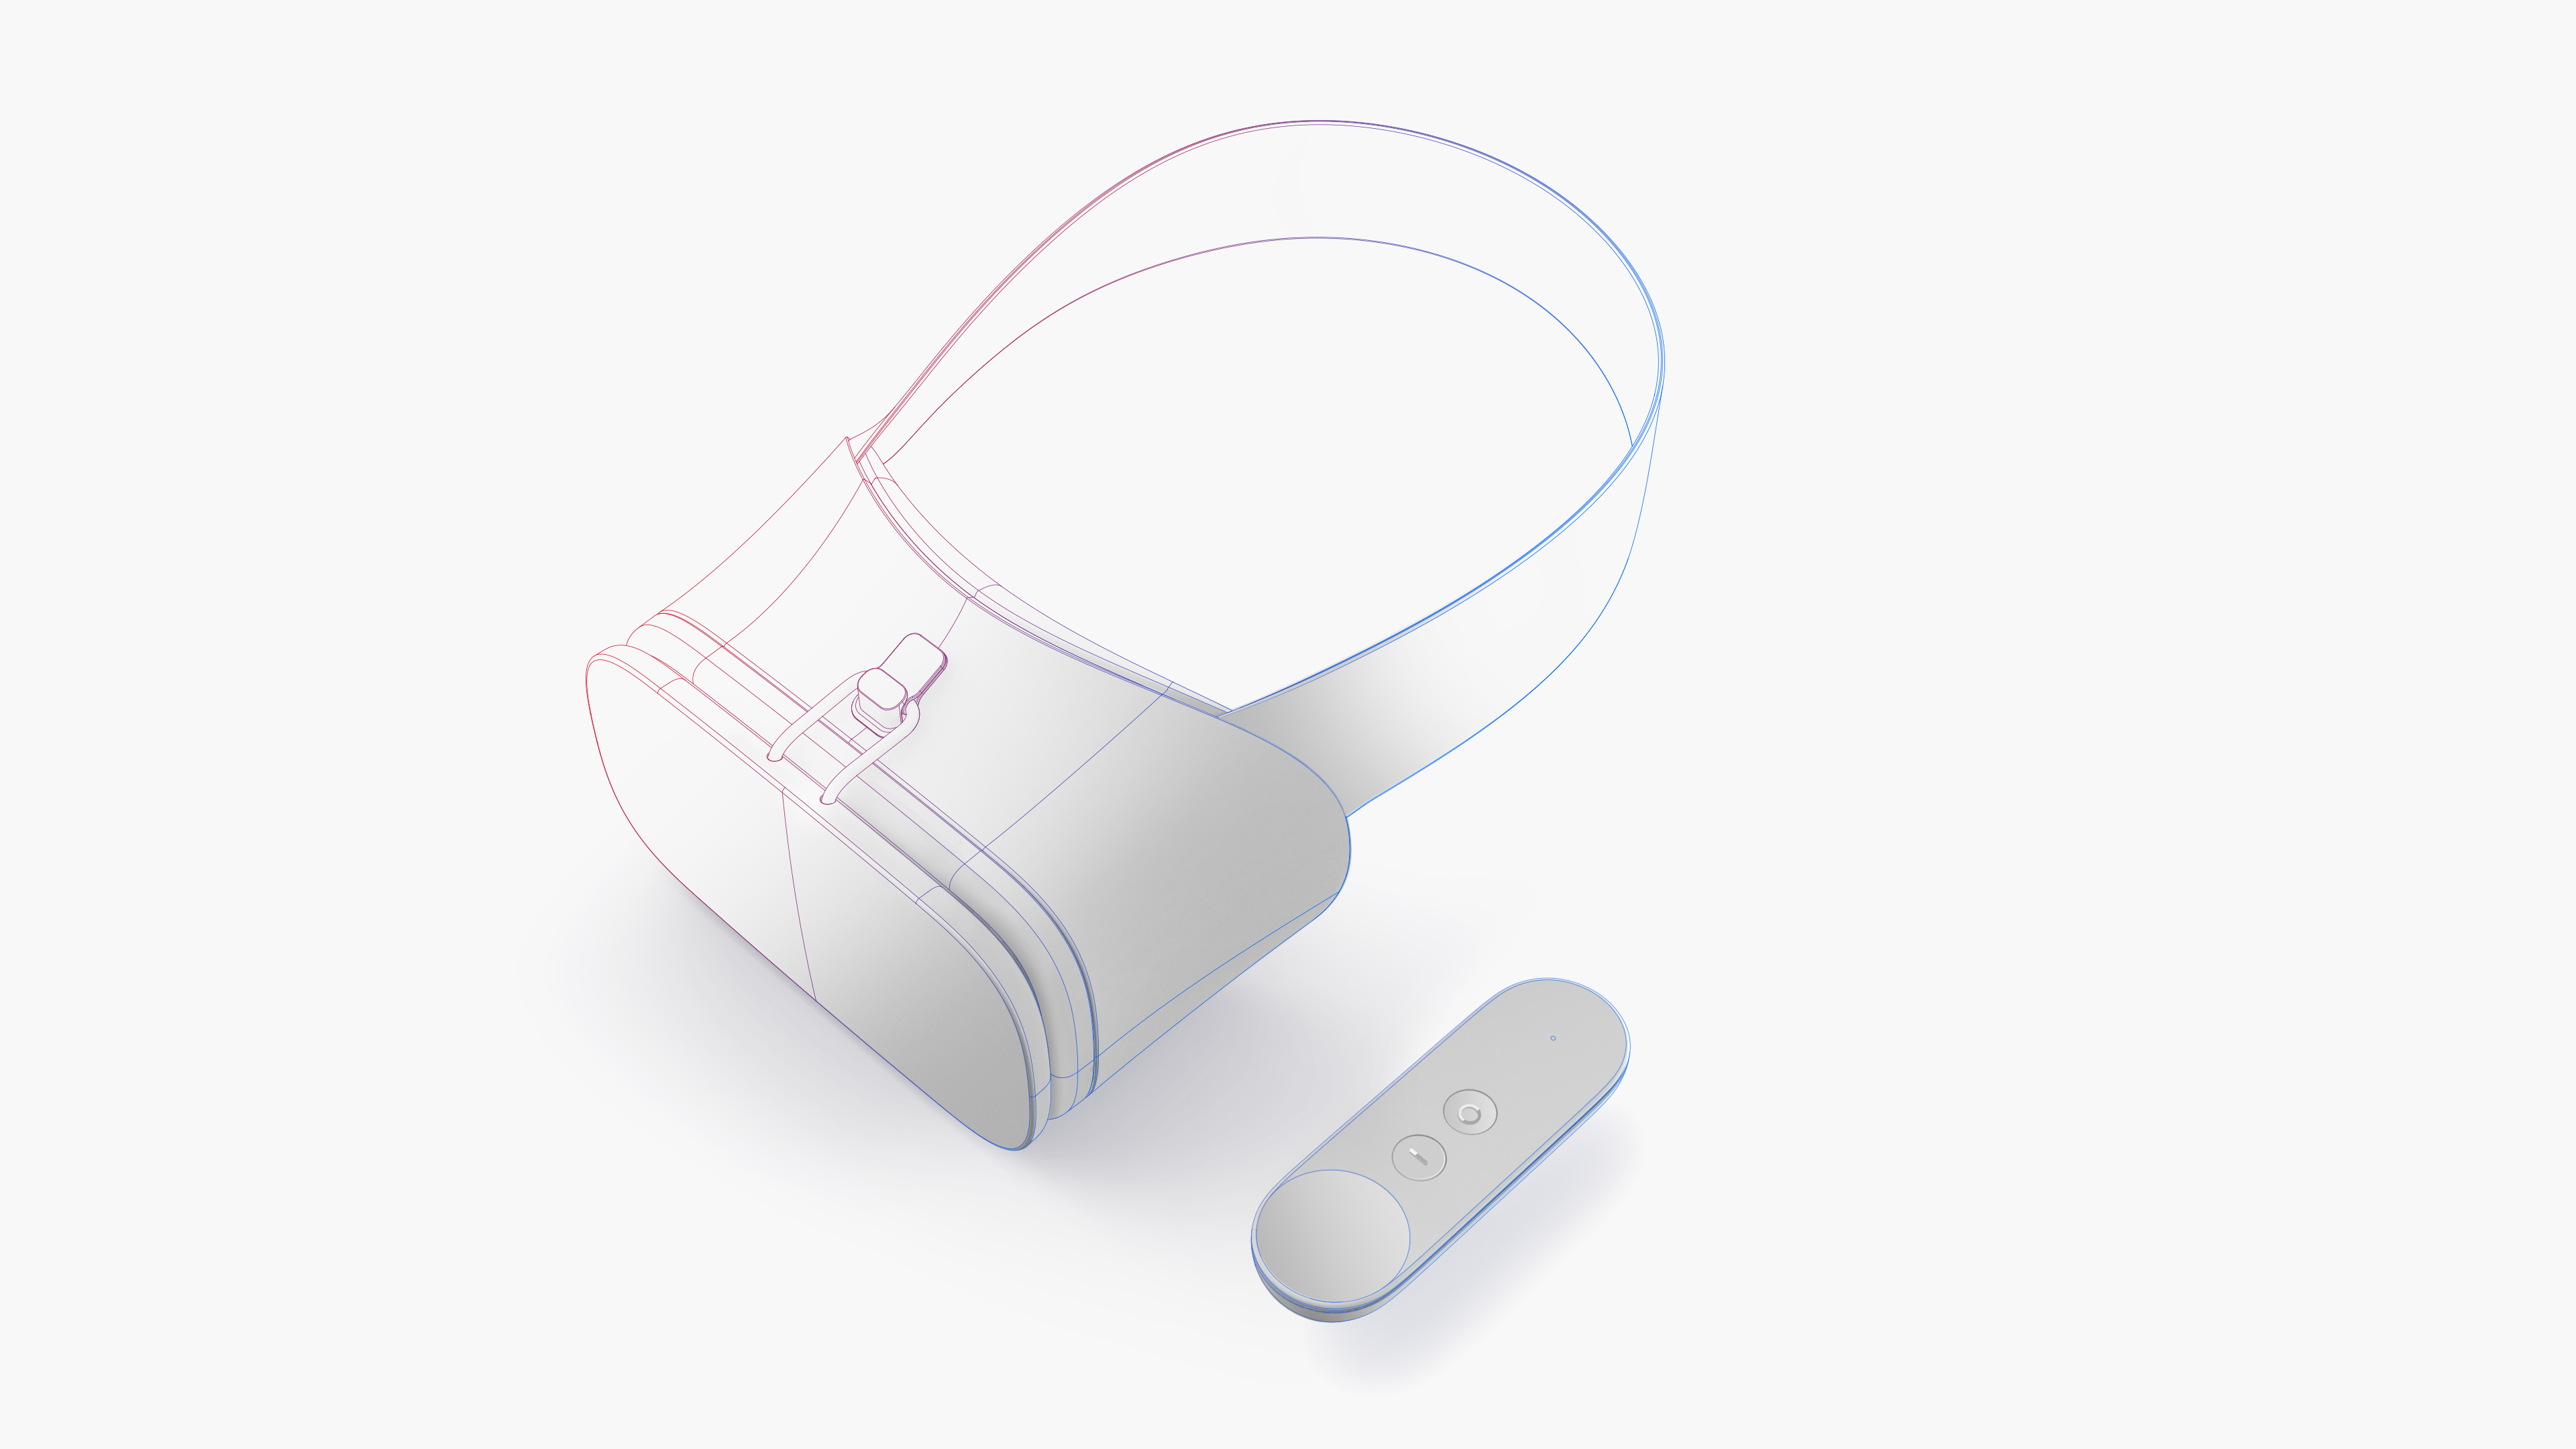 Google's new Daydream VR headset is not what we expected